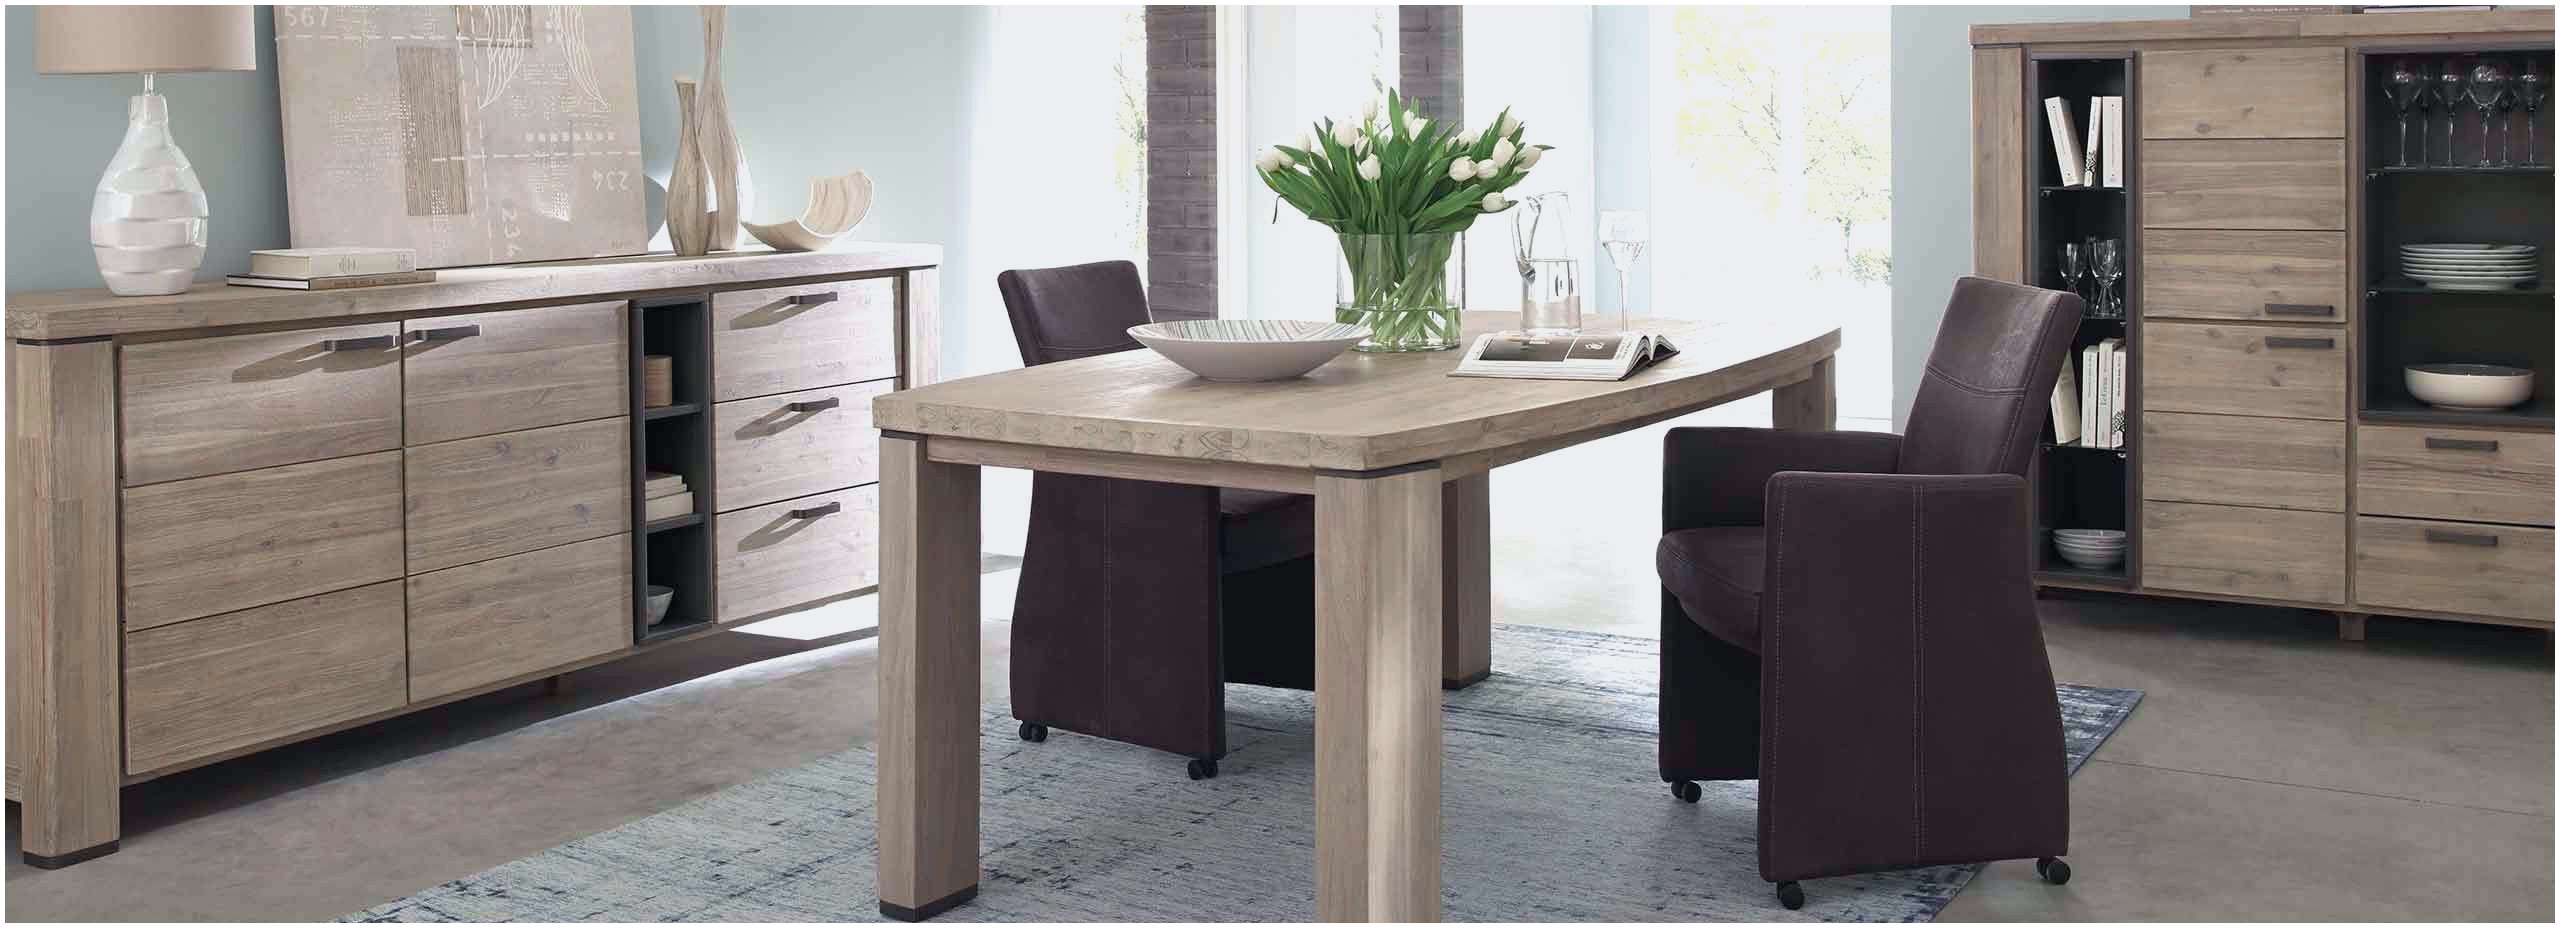 Table Bistrot 4 Personnes Beau Table A Manger Weba Of 24 Inspirant Table Bistrot 4 Personnes